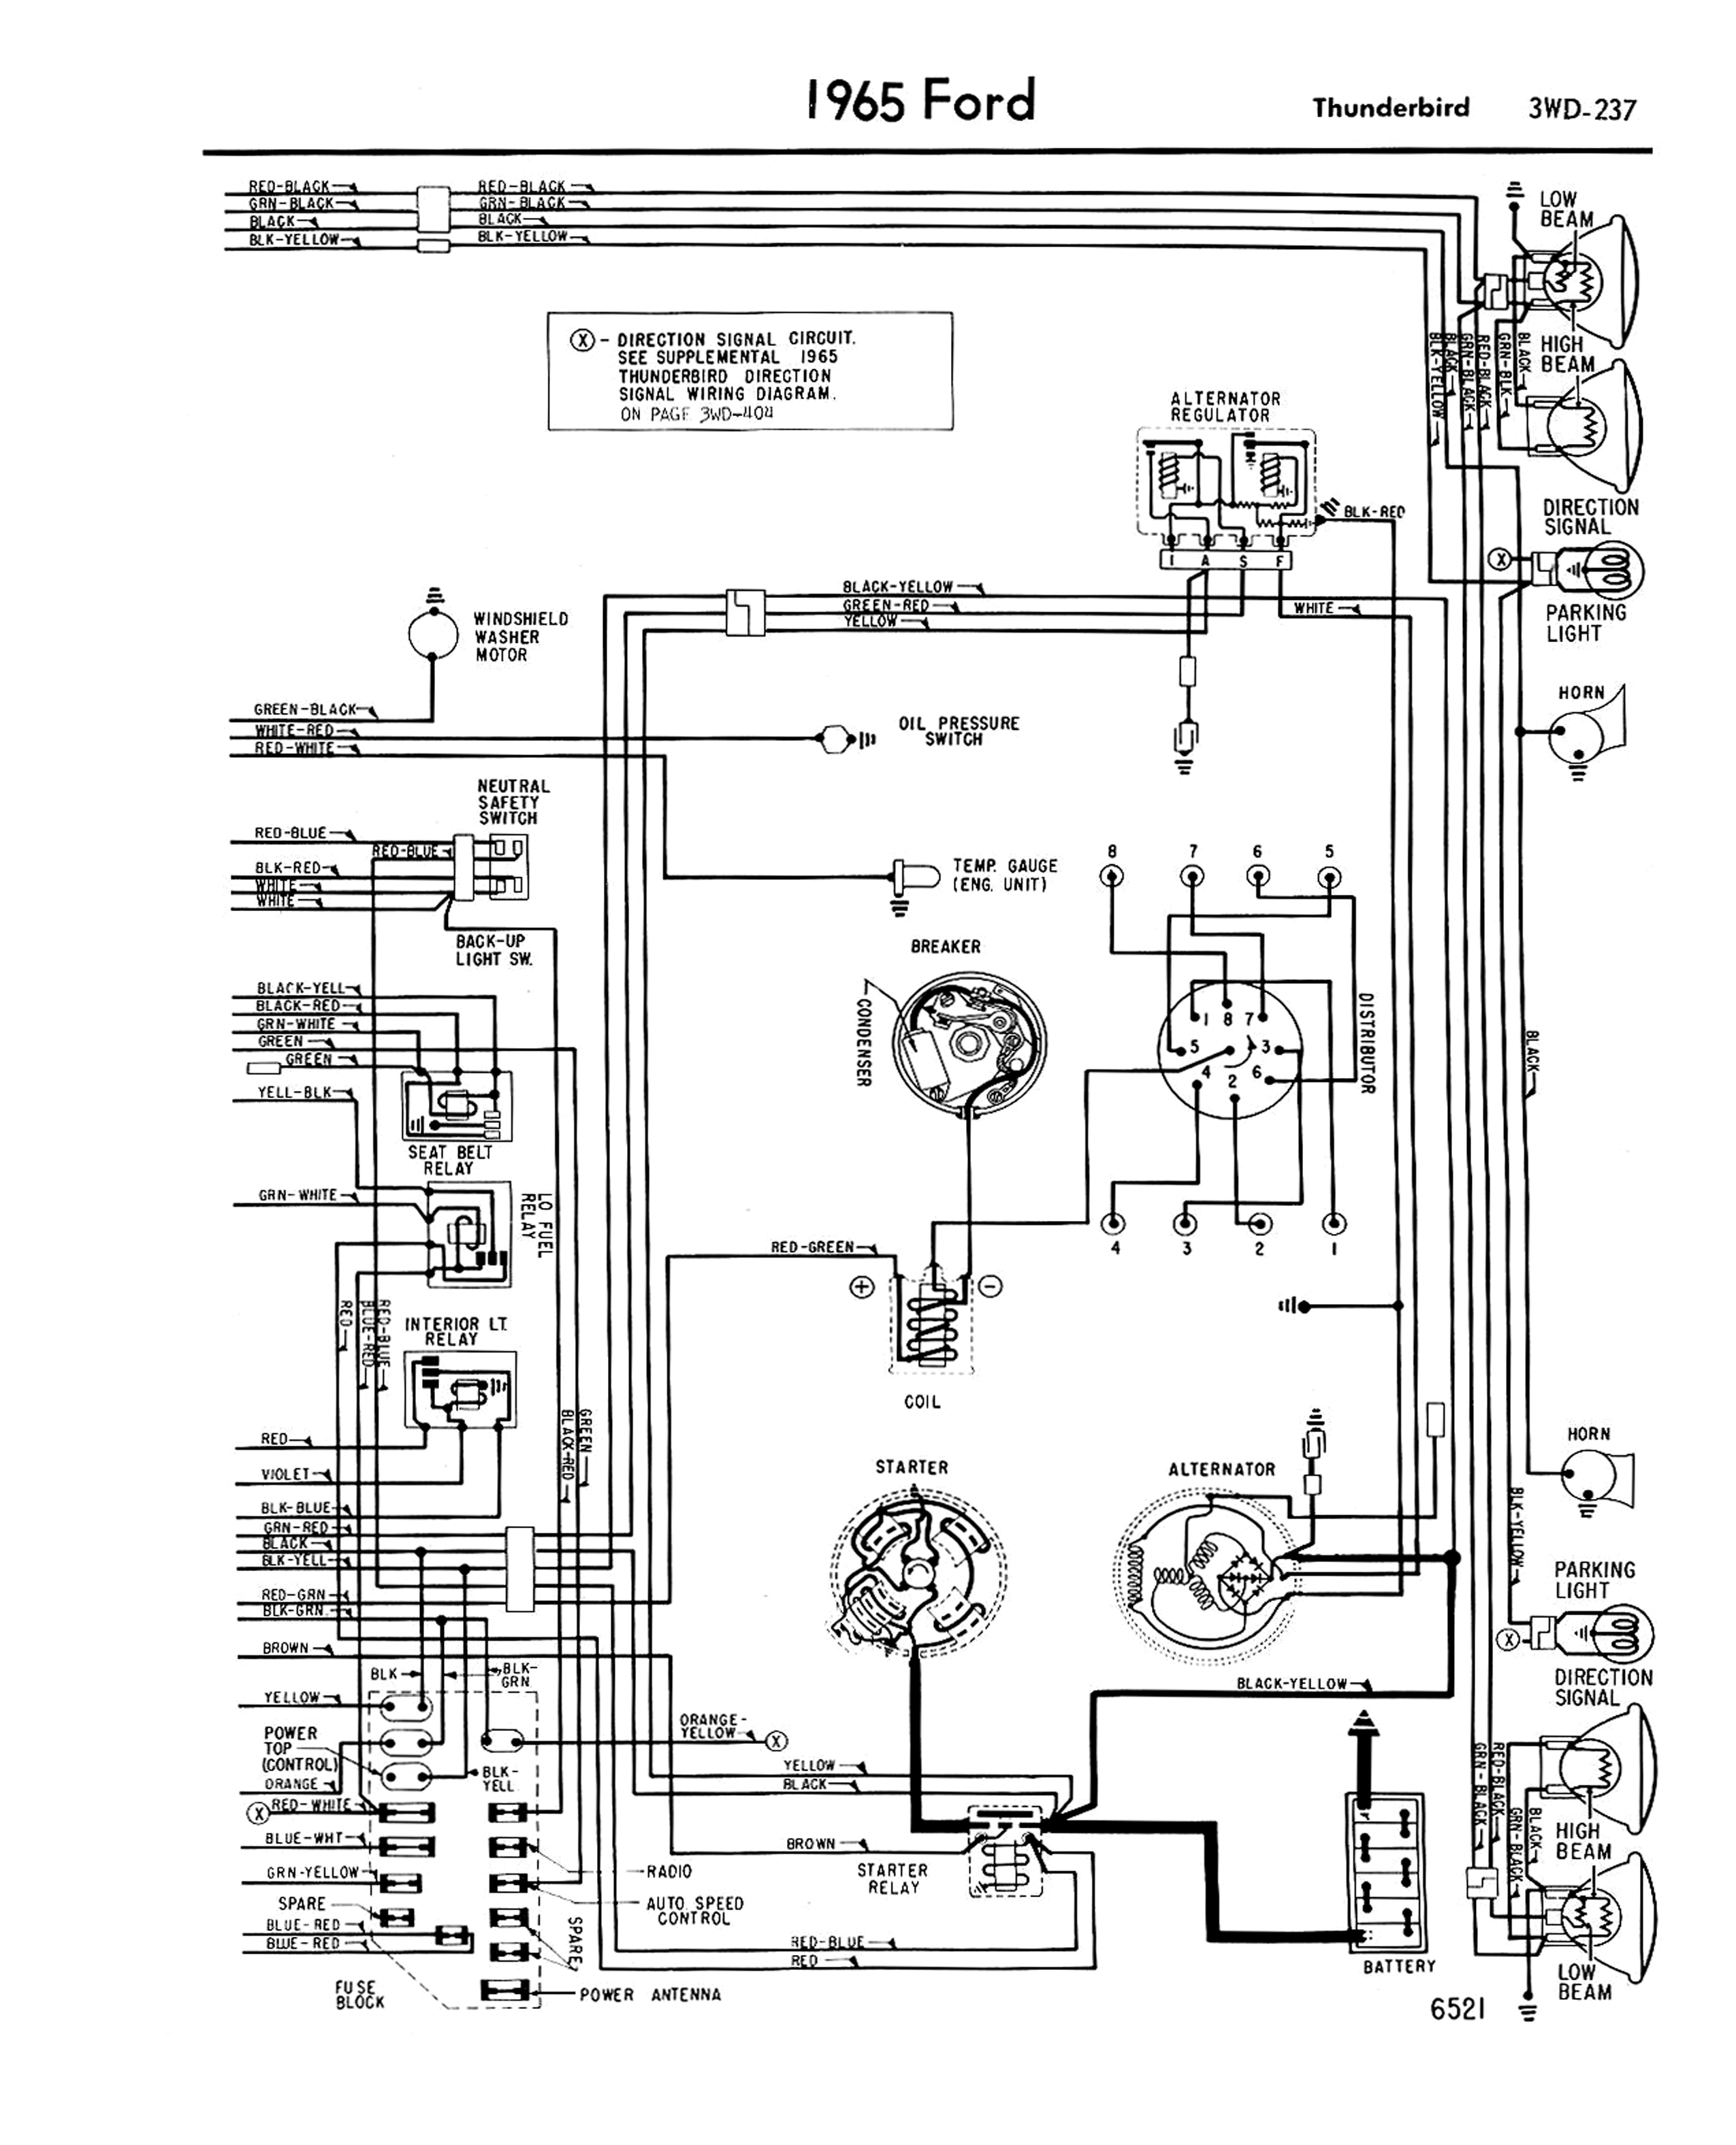 1955 Thunderbird 6 Volt Coil Wiring Diagram Diagrams Schematic 1966 F 100 For 1986 Ford Data Ballast Resistor